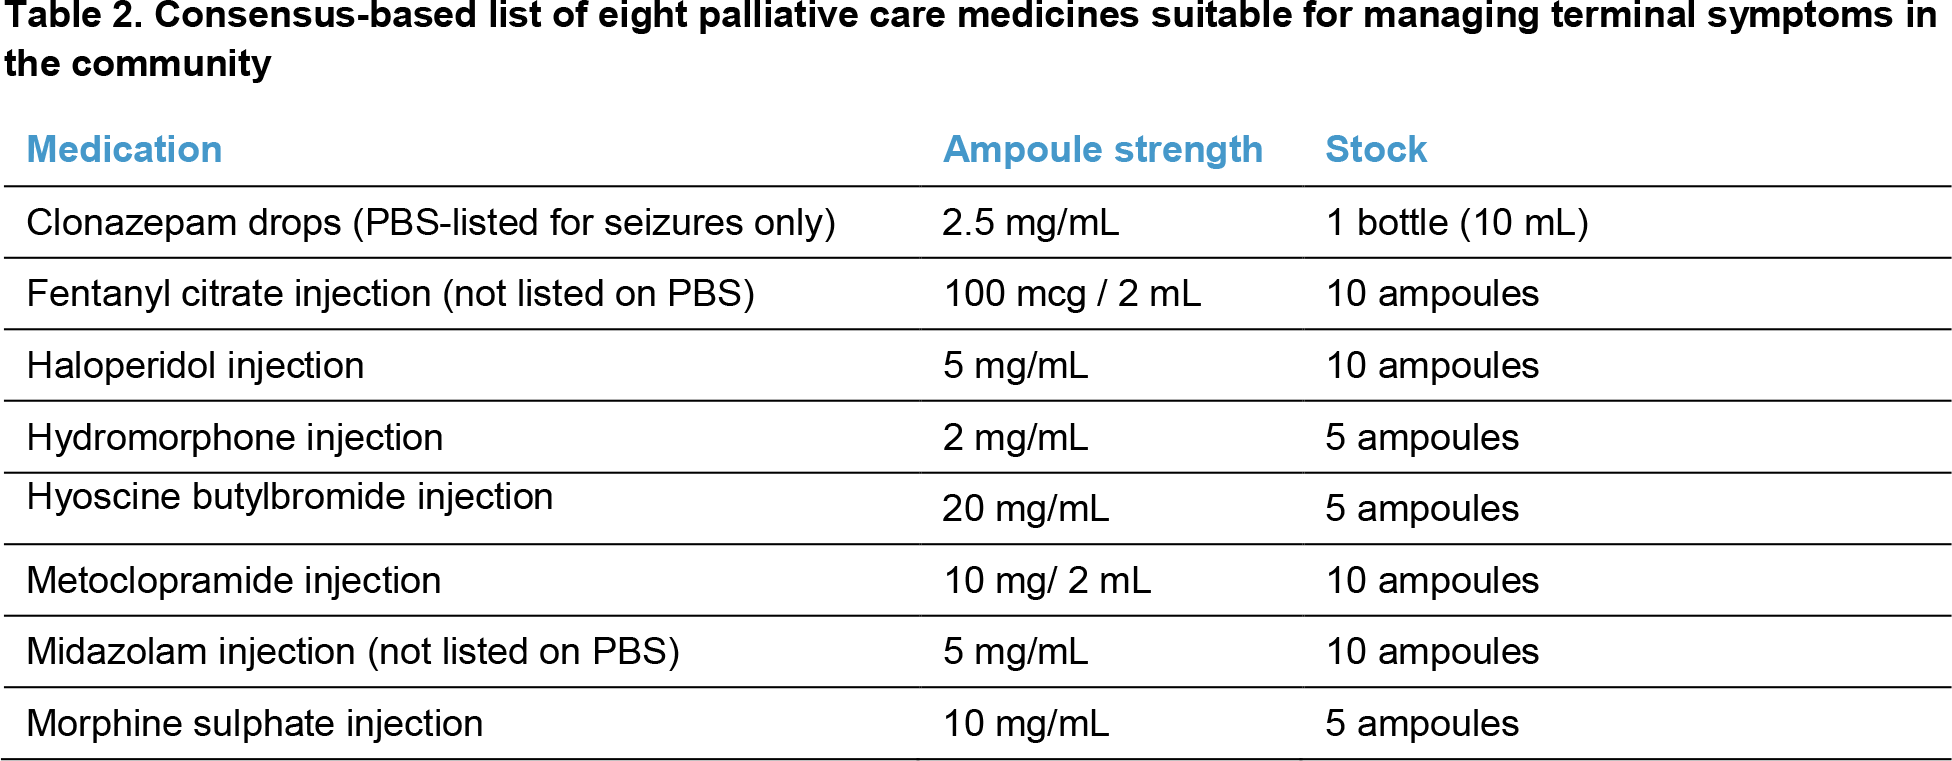 Table 2. Consensus-based list of eight palliative care medicines suitable for managing terminal symptoms in the community